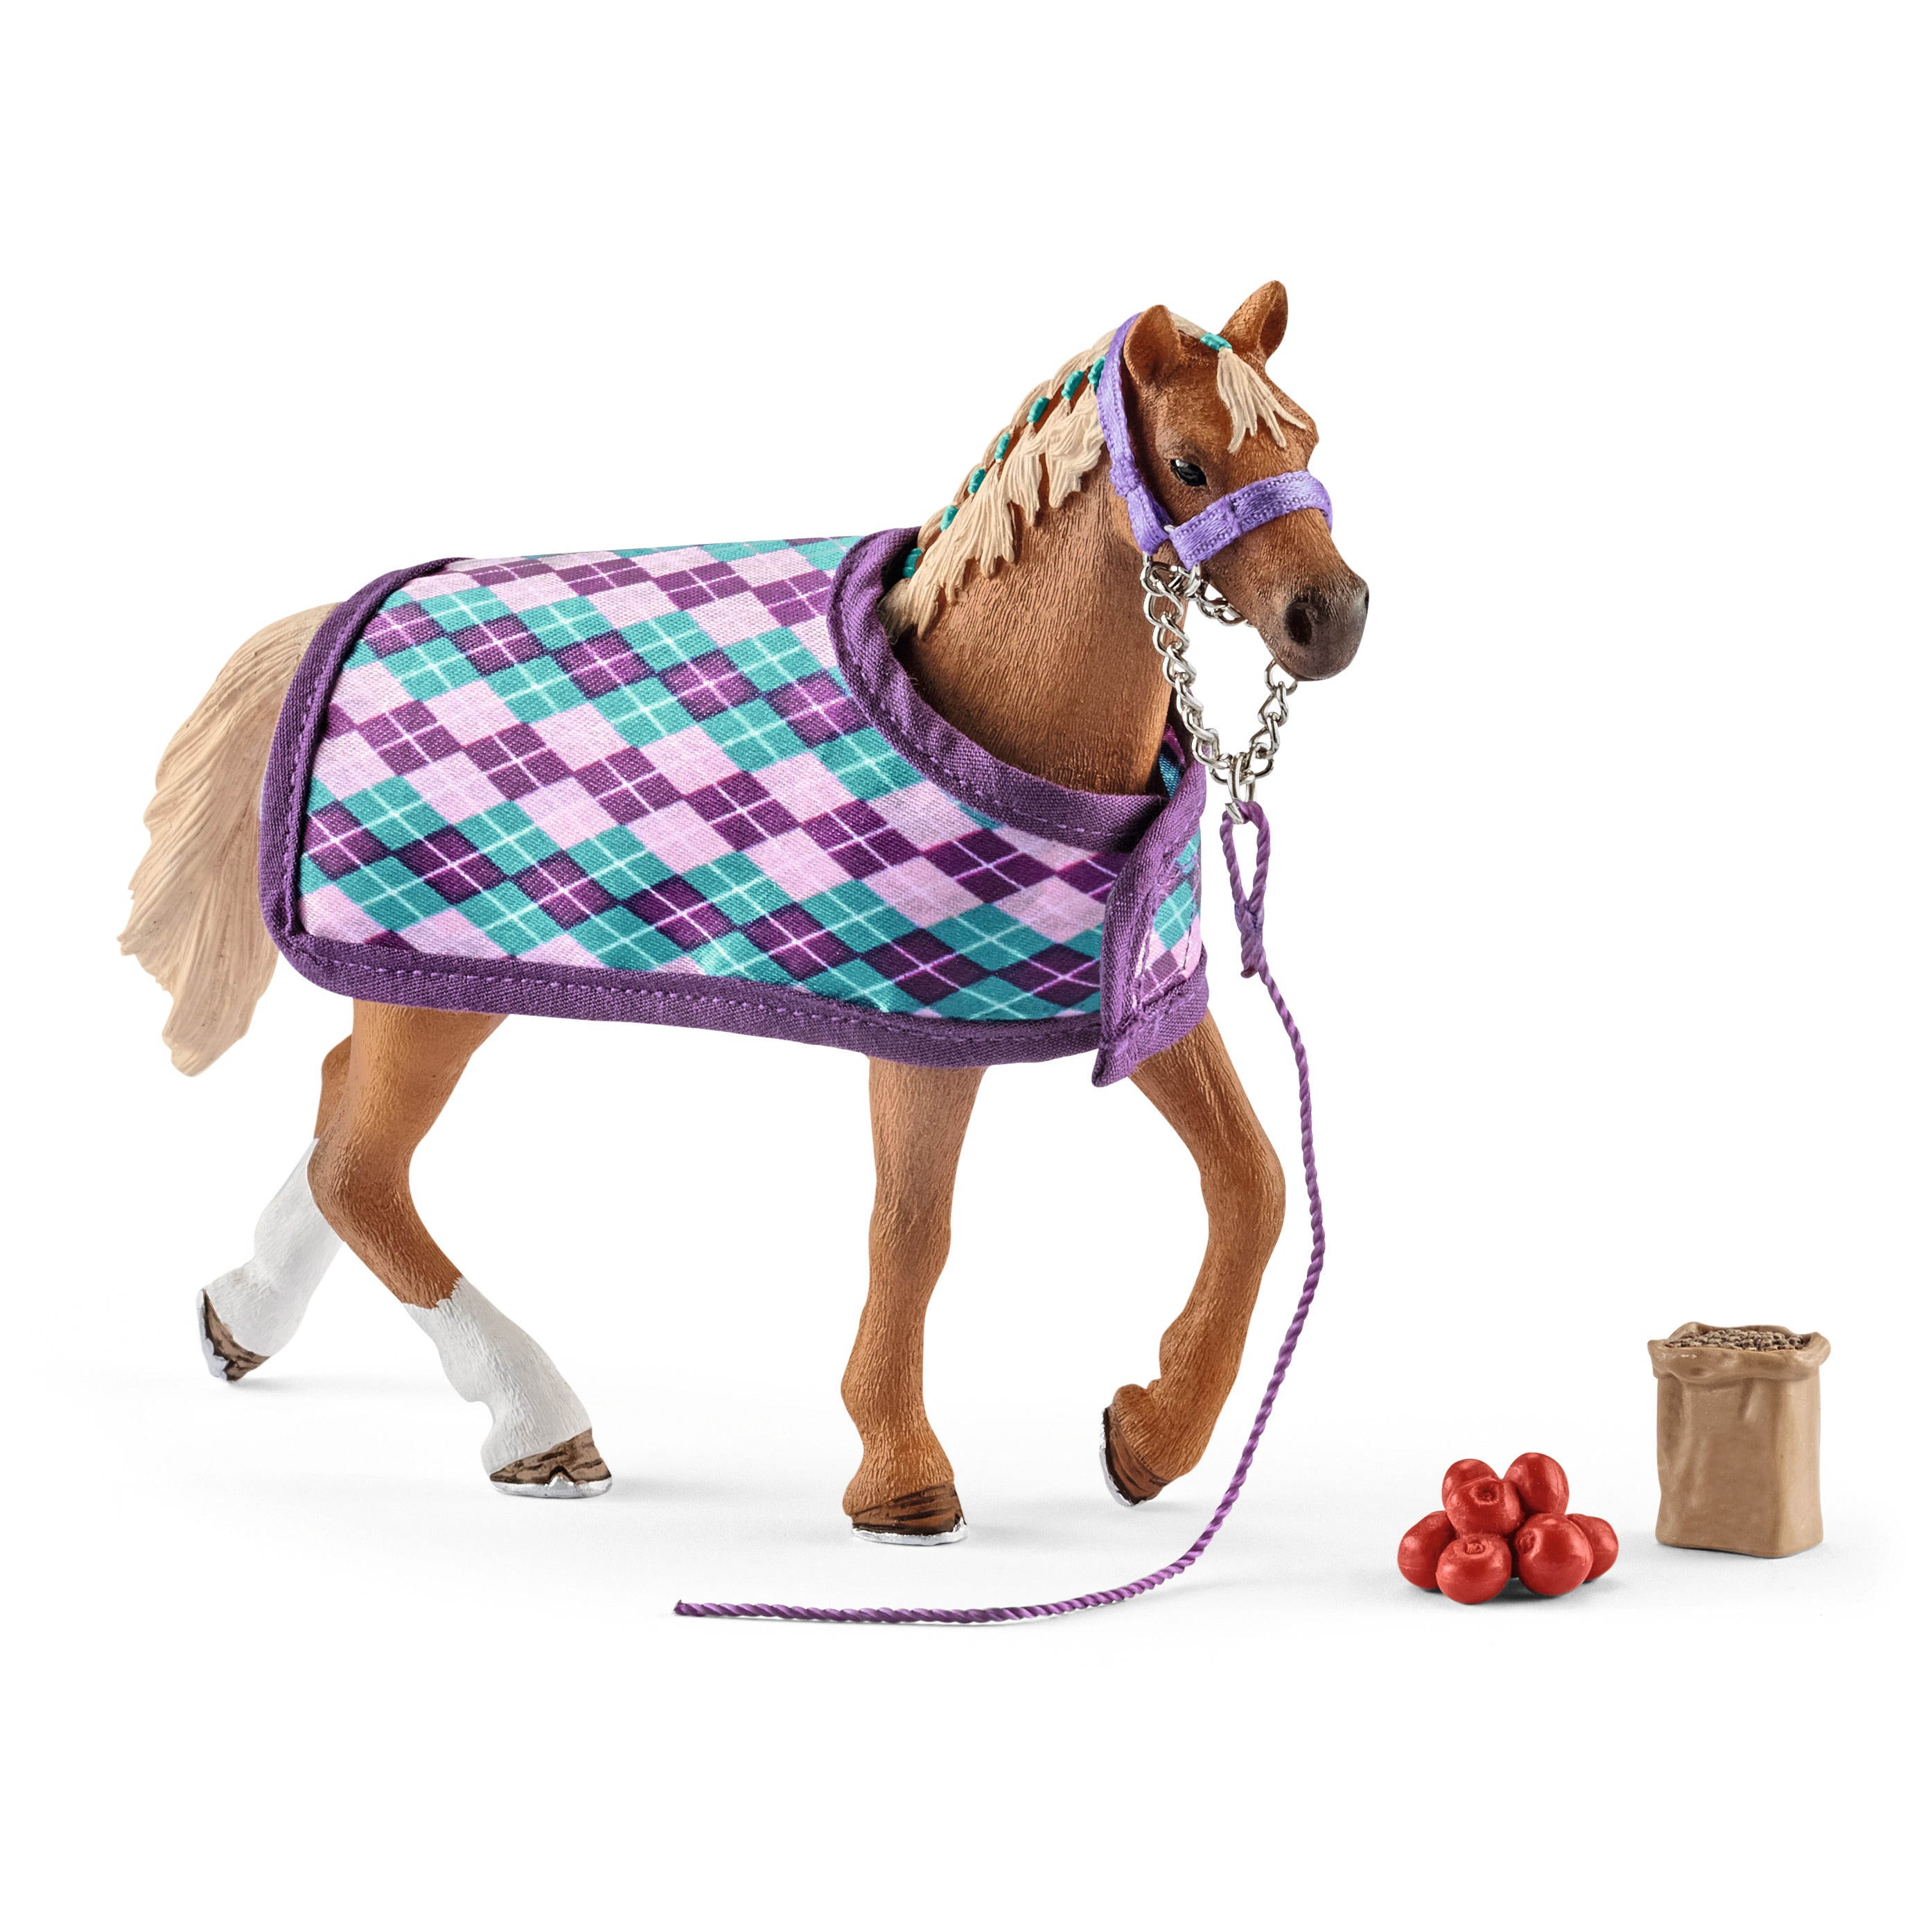 English Thoroughbred with Blanket, Halter and Treats